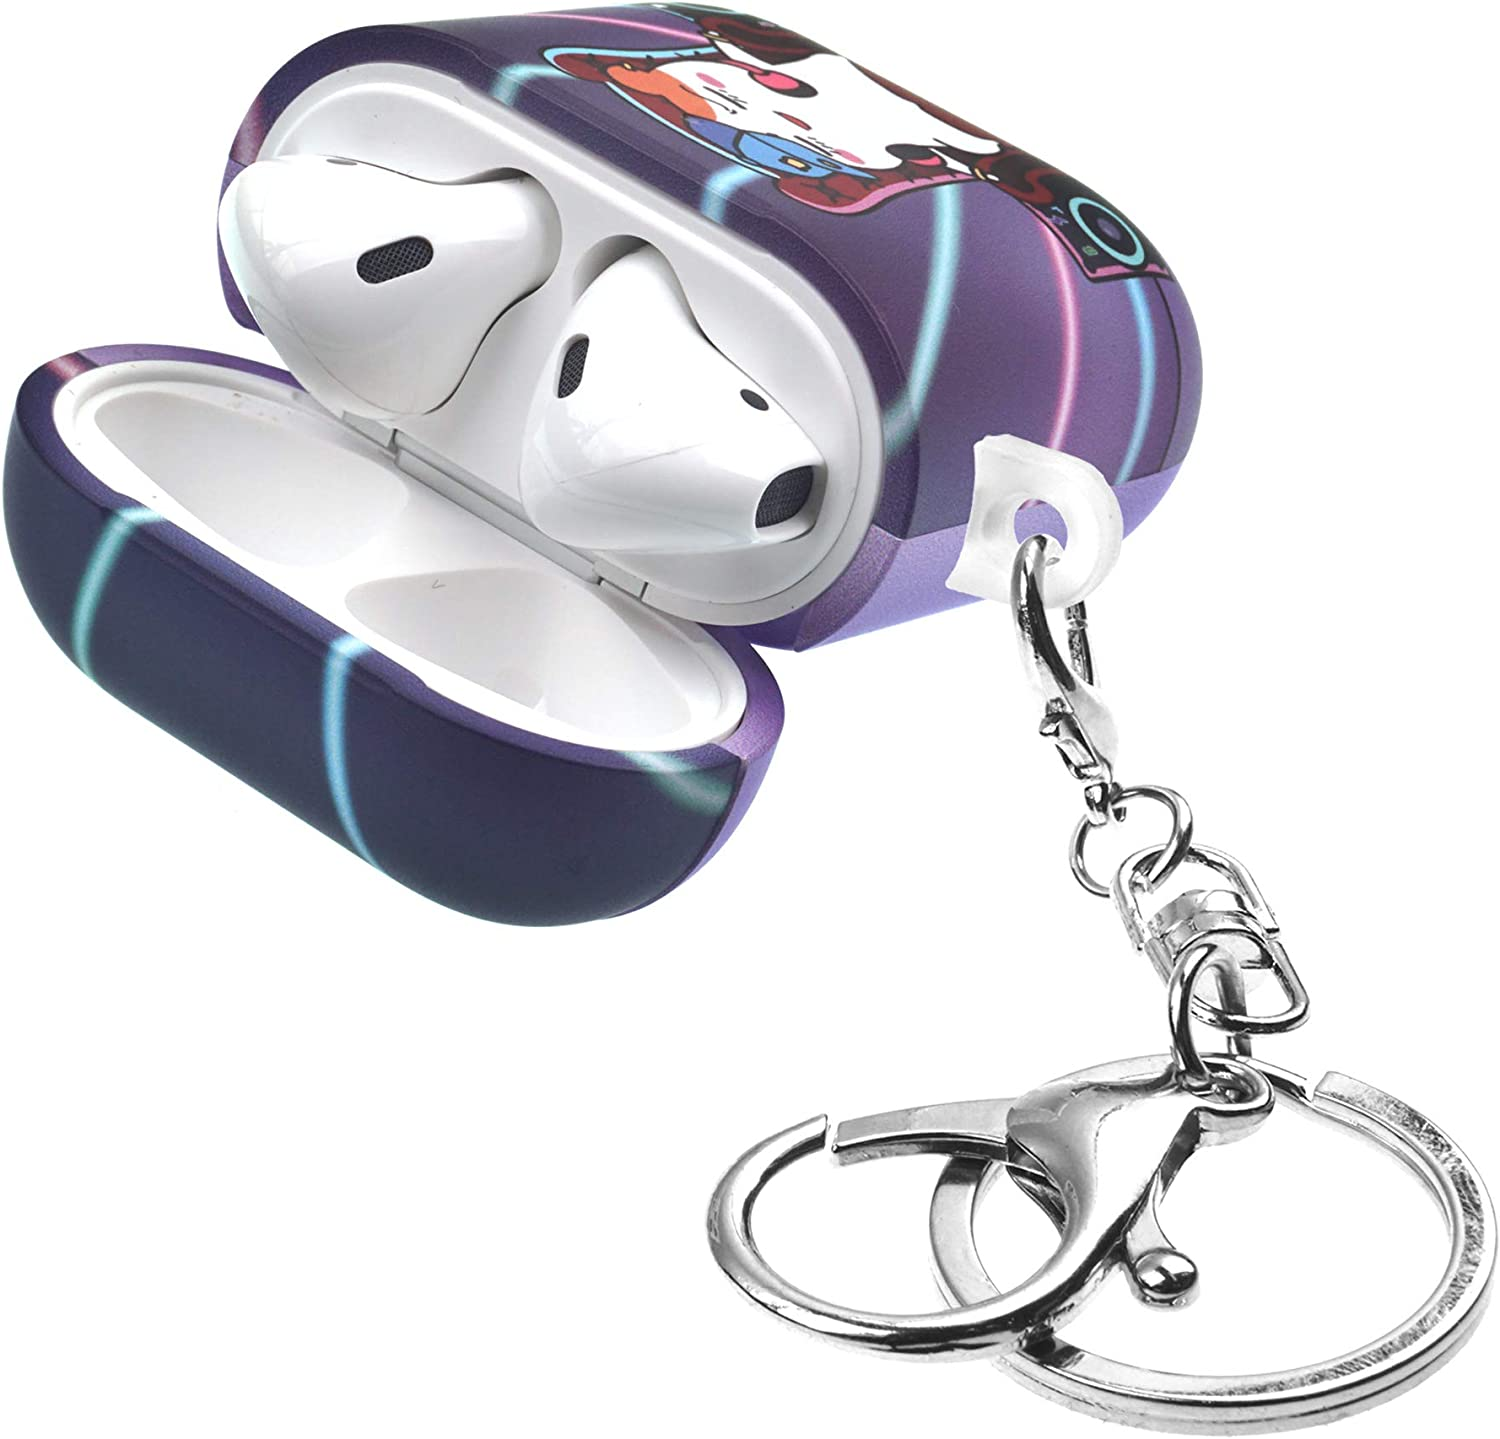 Front LED Visible Compatible with Apple Airpods 1 /& AirPods 2 Outing Ebichu Flower ORUCHUBAN EBICHU AirPods Case with Key Ring Keychain Key Holder Hard PC Shell Strap Hole Cover